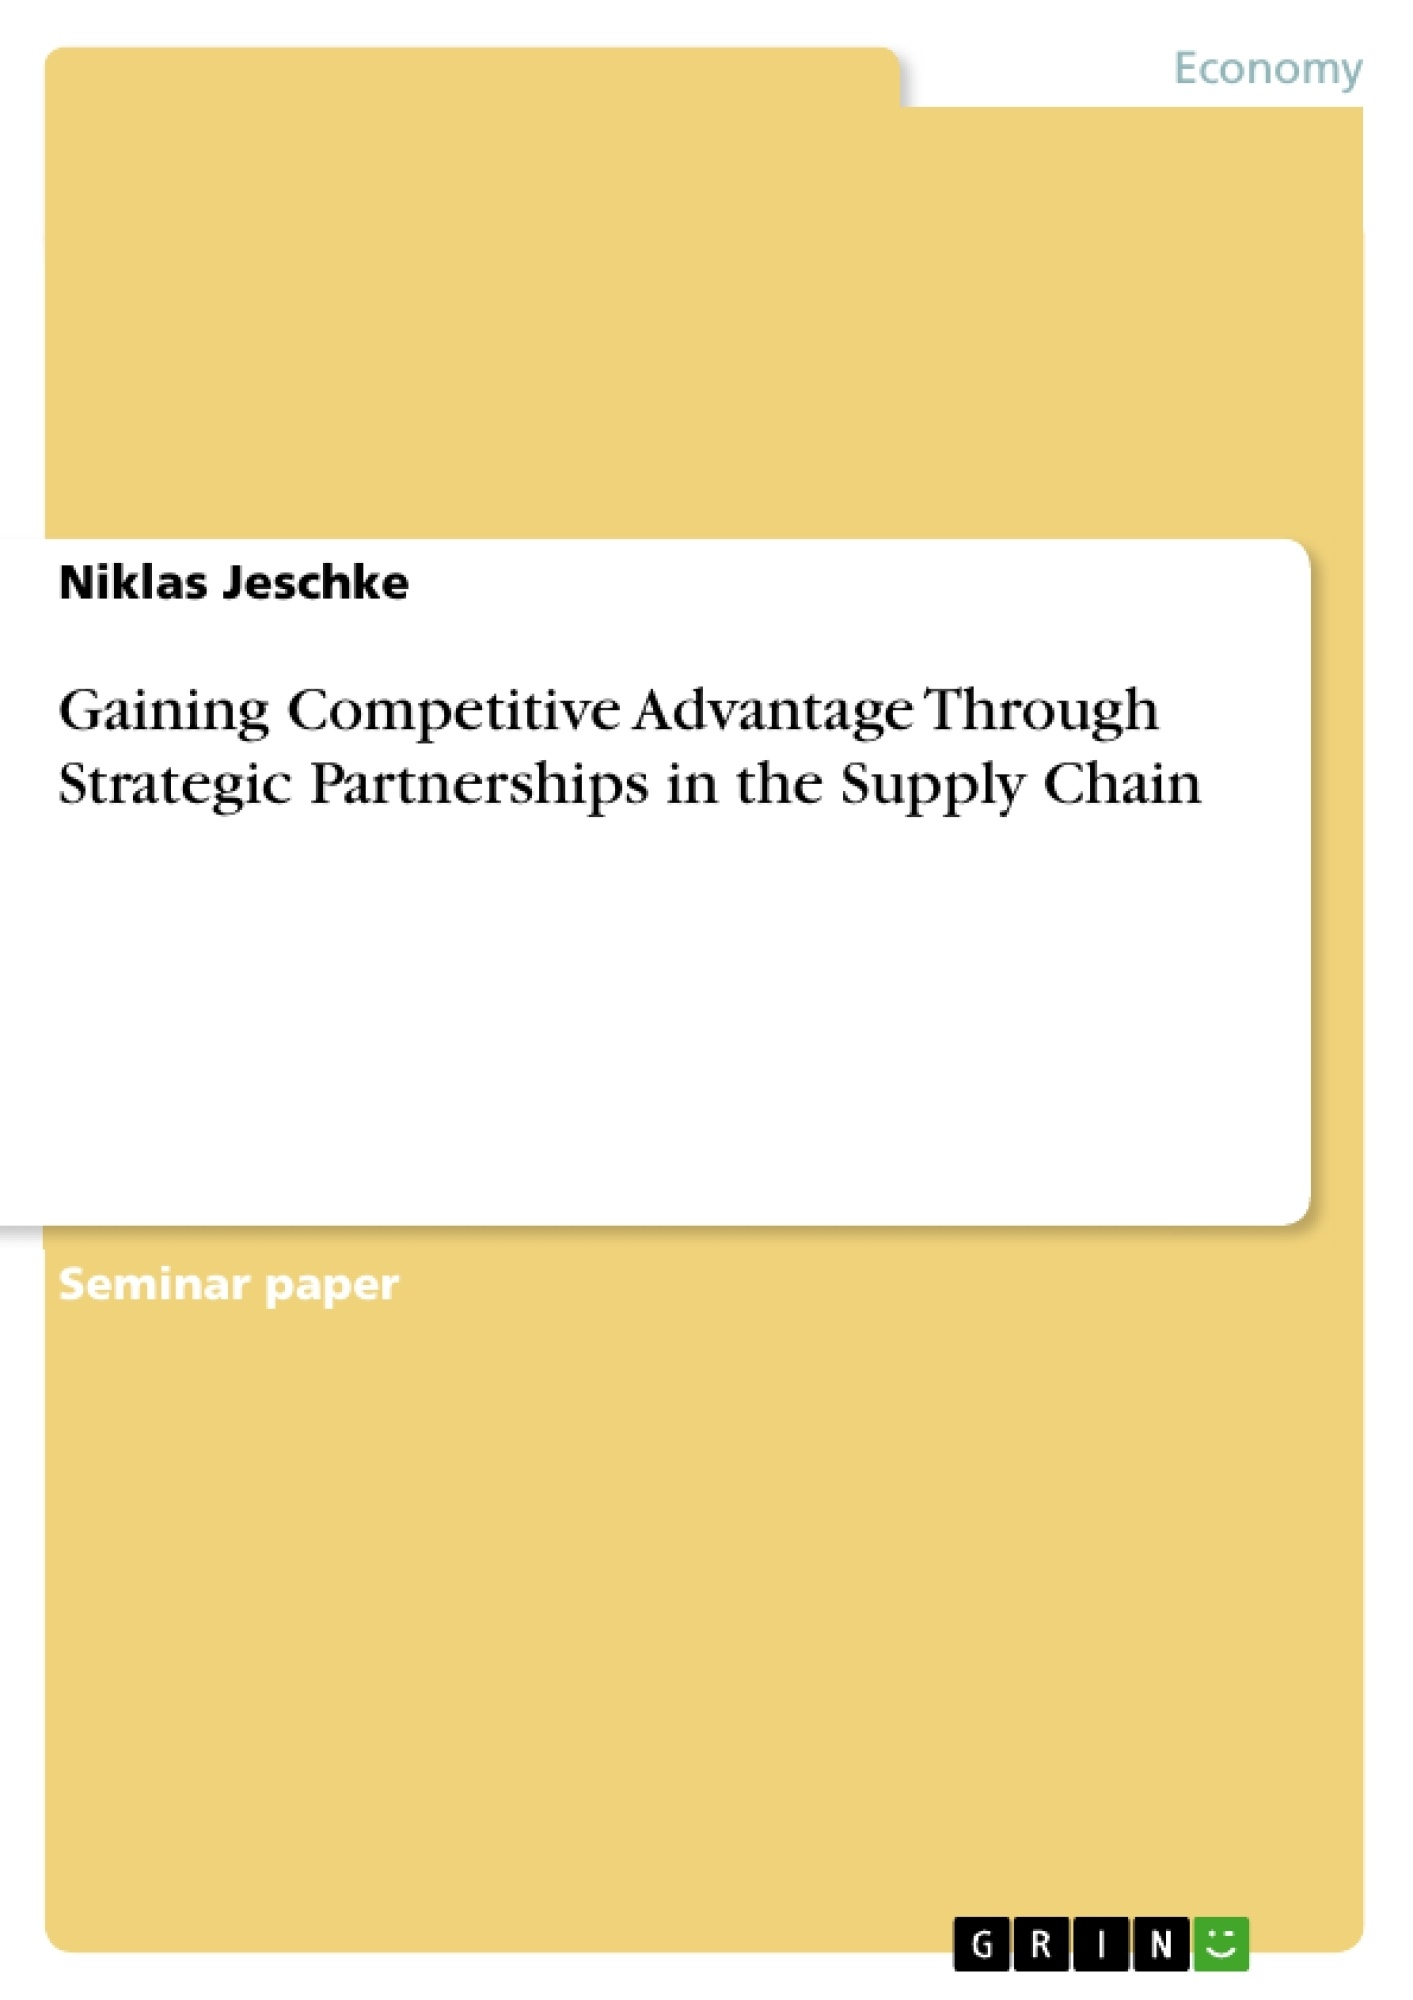 Gaining Competitive Advantage Through Strategic Partnerships in the Supply Chain